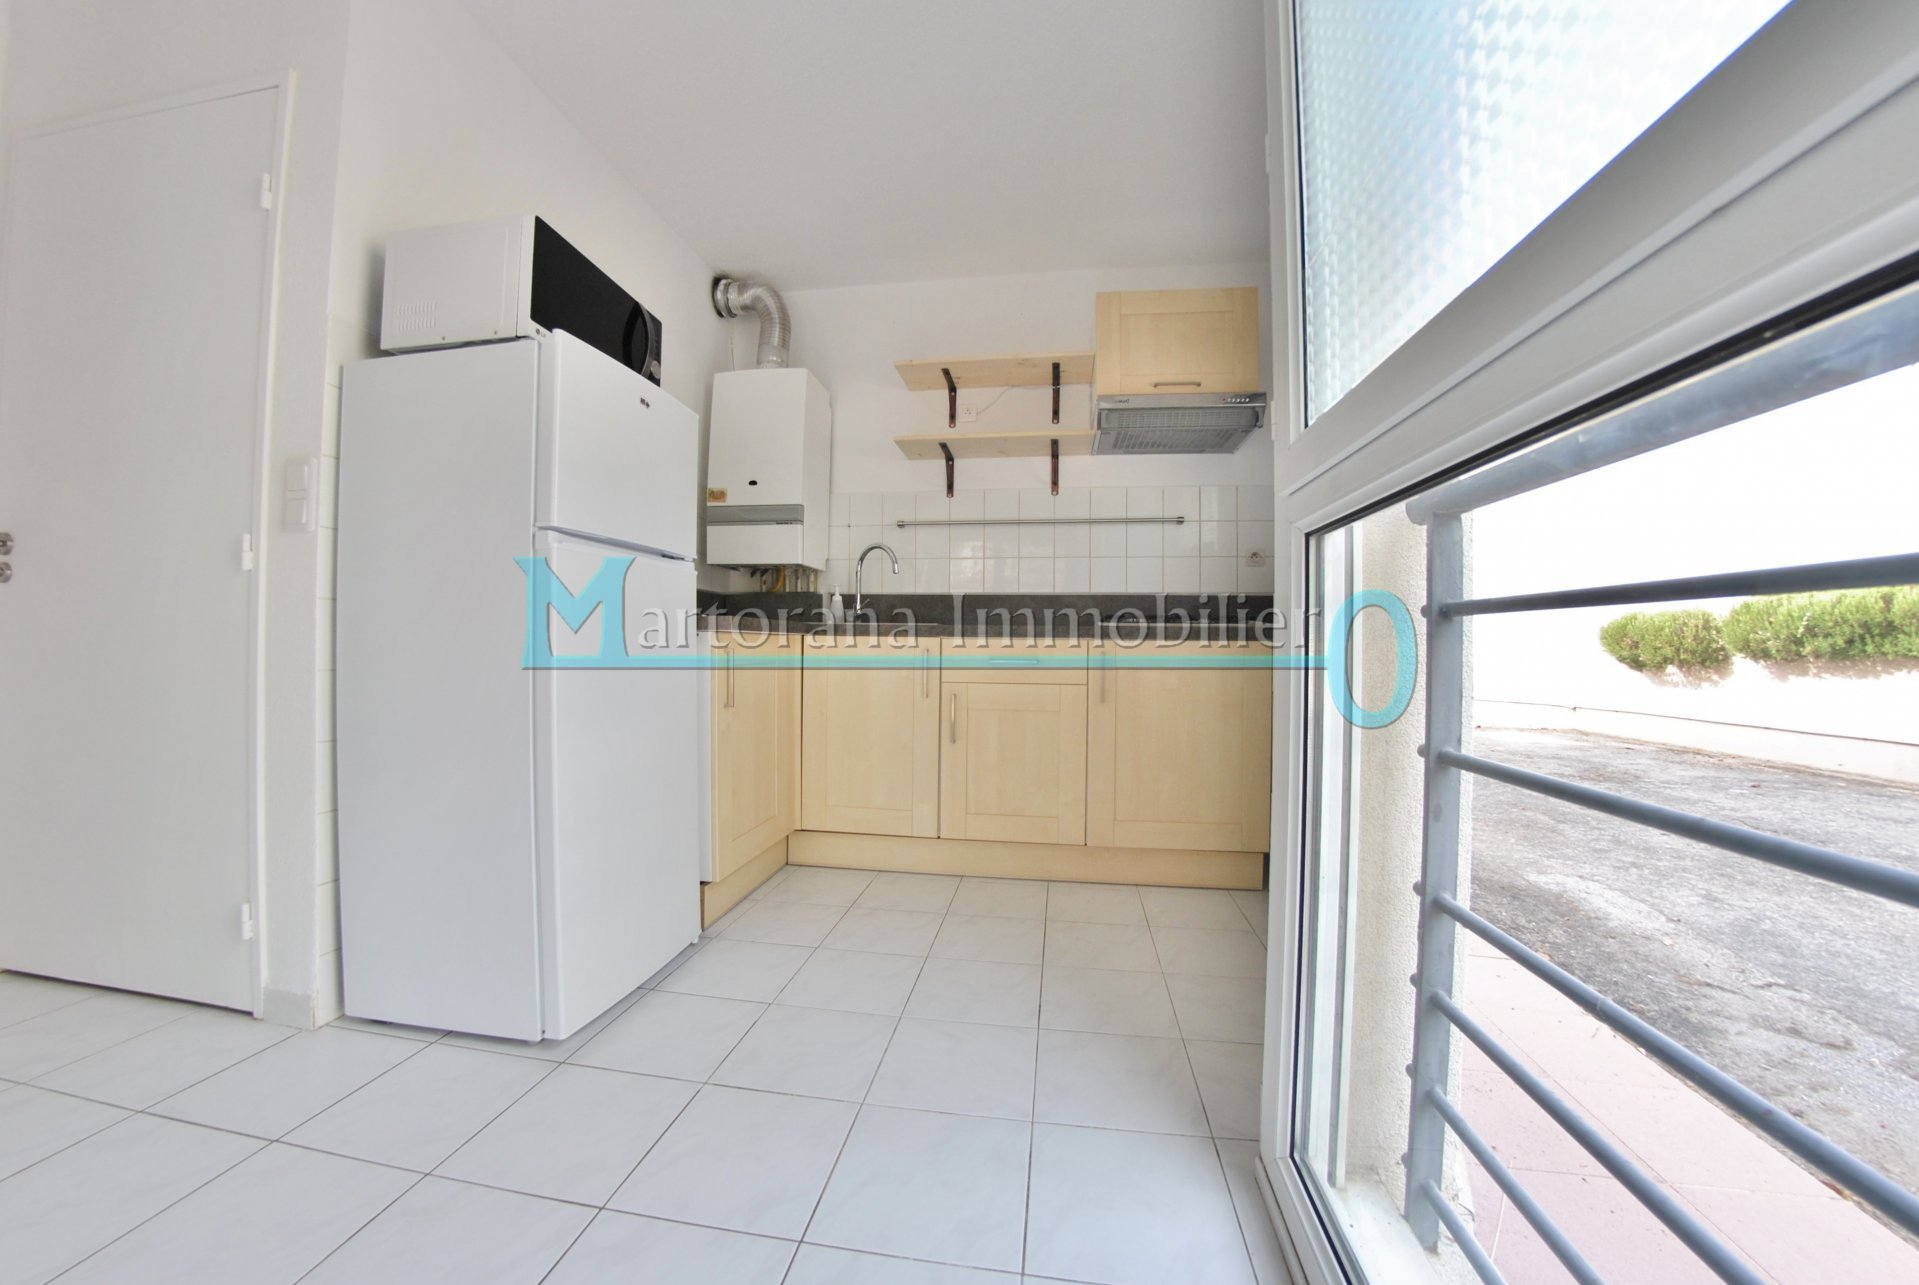 Furnished studio in garden floor in gated residency with pool in the heart of Sophia Antipolis